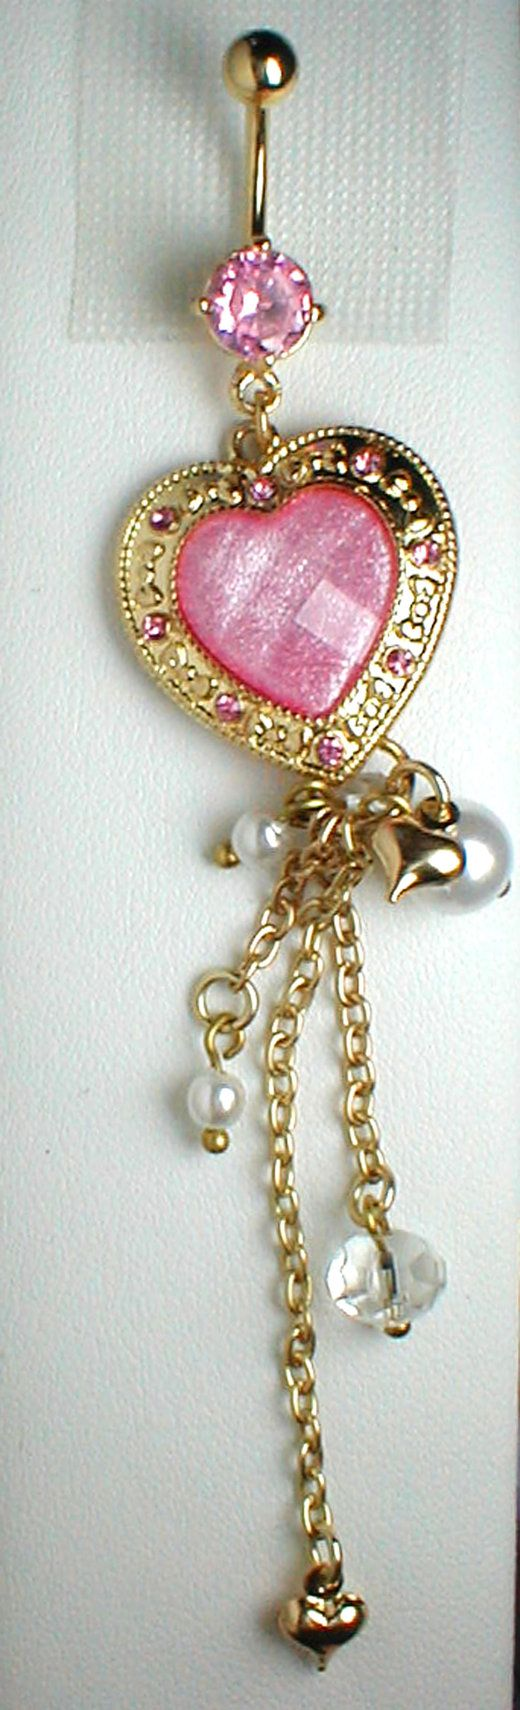 Unique Belly Ring  Trendy Heart with Pearls by pondgazer2004, $11.95